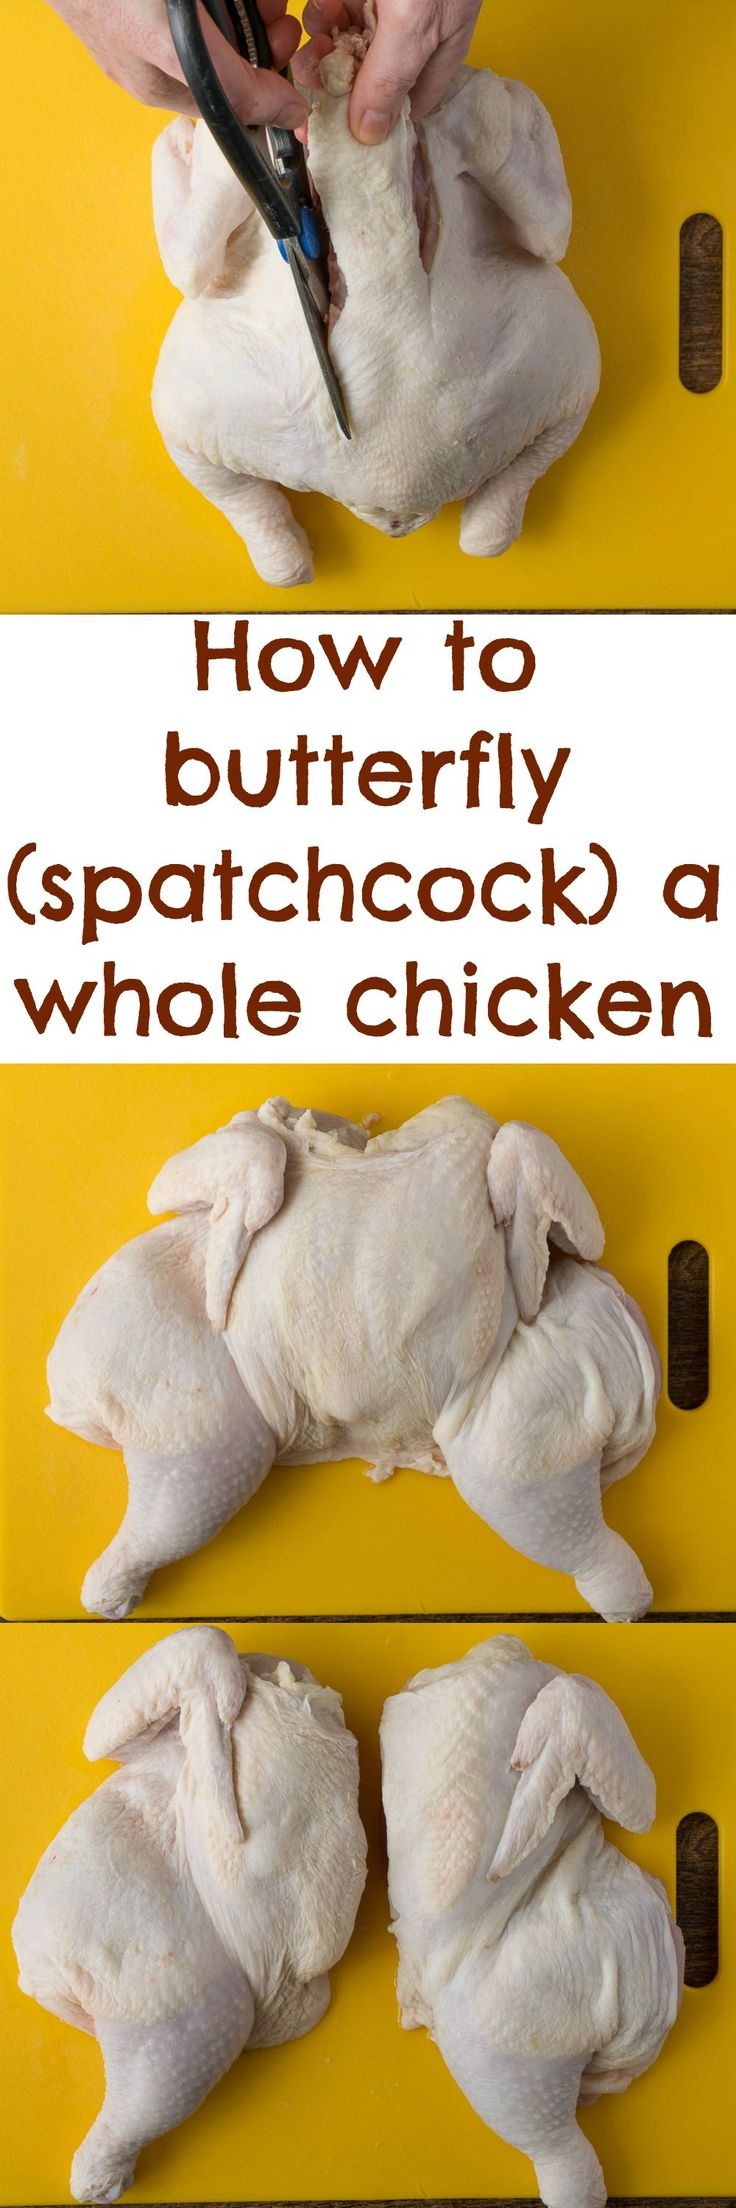 A butterfly (or spatchcock) prepared chicken cooks up quickly with juicy meat and crispy skin when grilled or roasted.